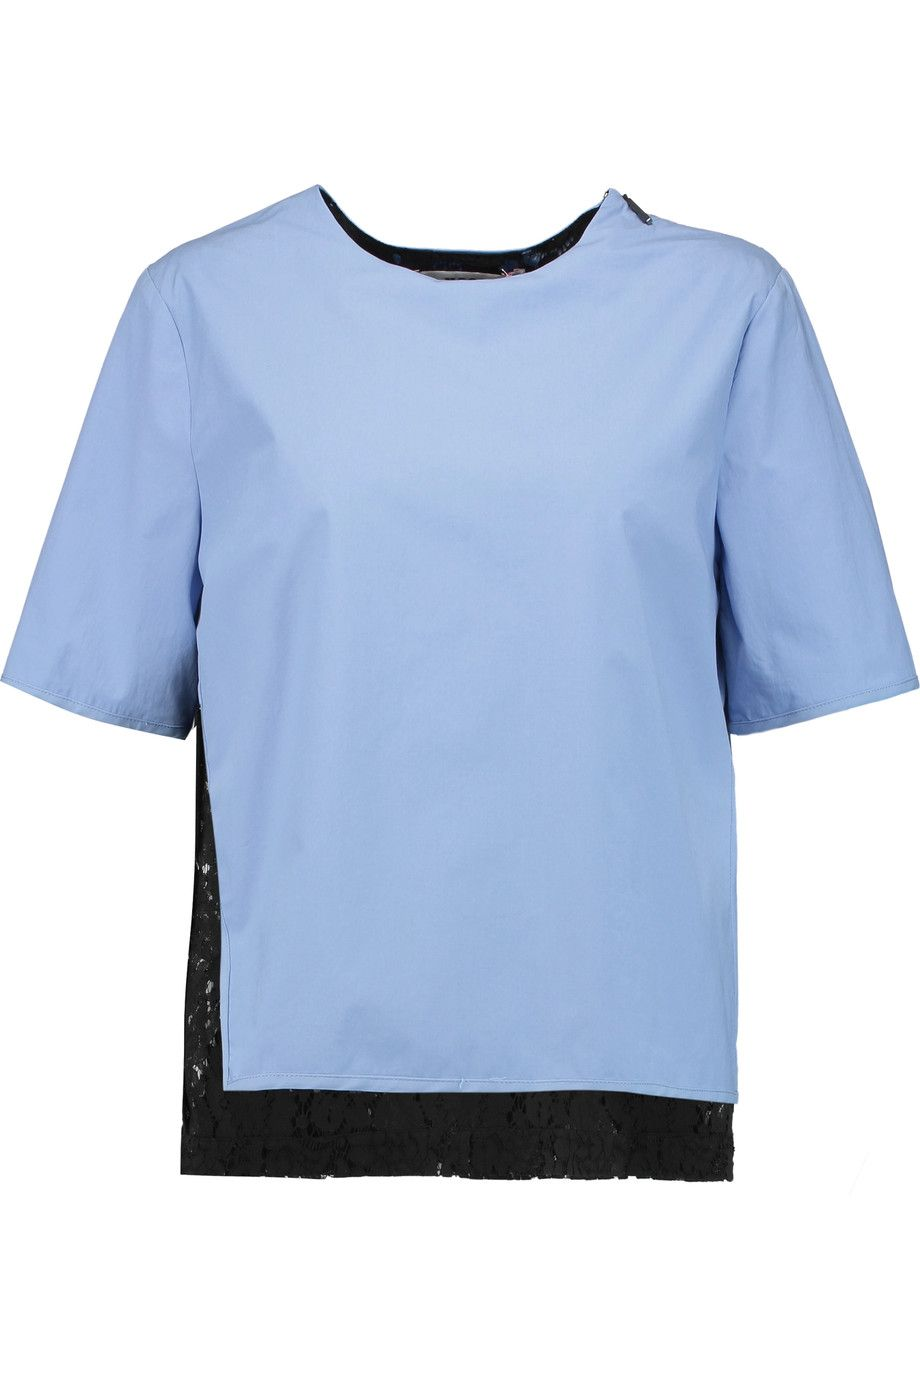 MSGM Layered stretch-cotton and guipure lace top. #msgm #cloth #top